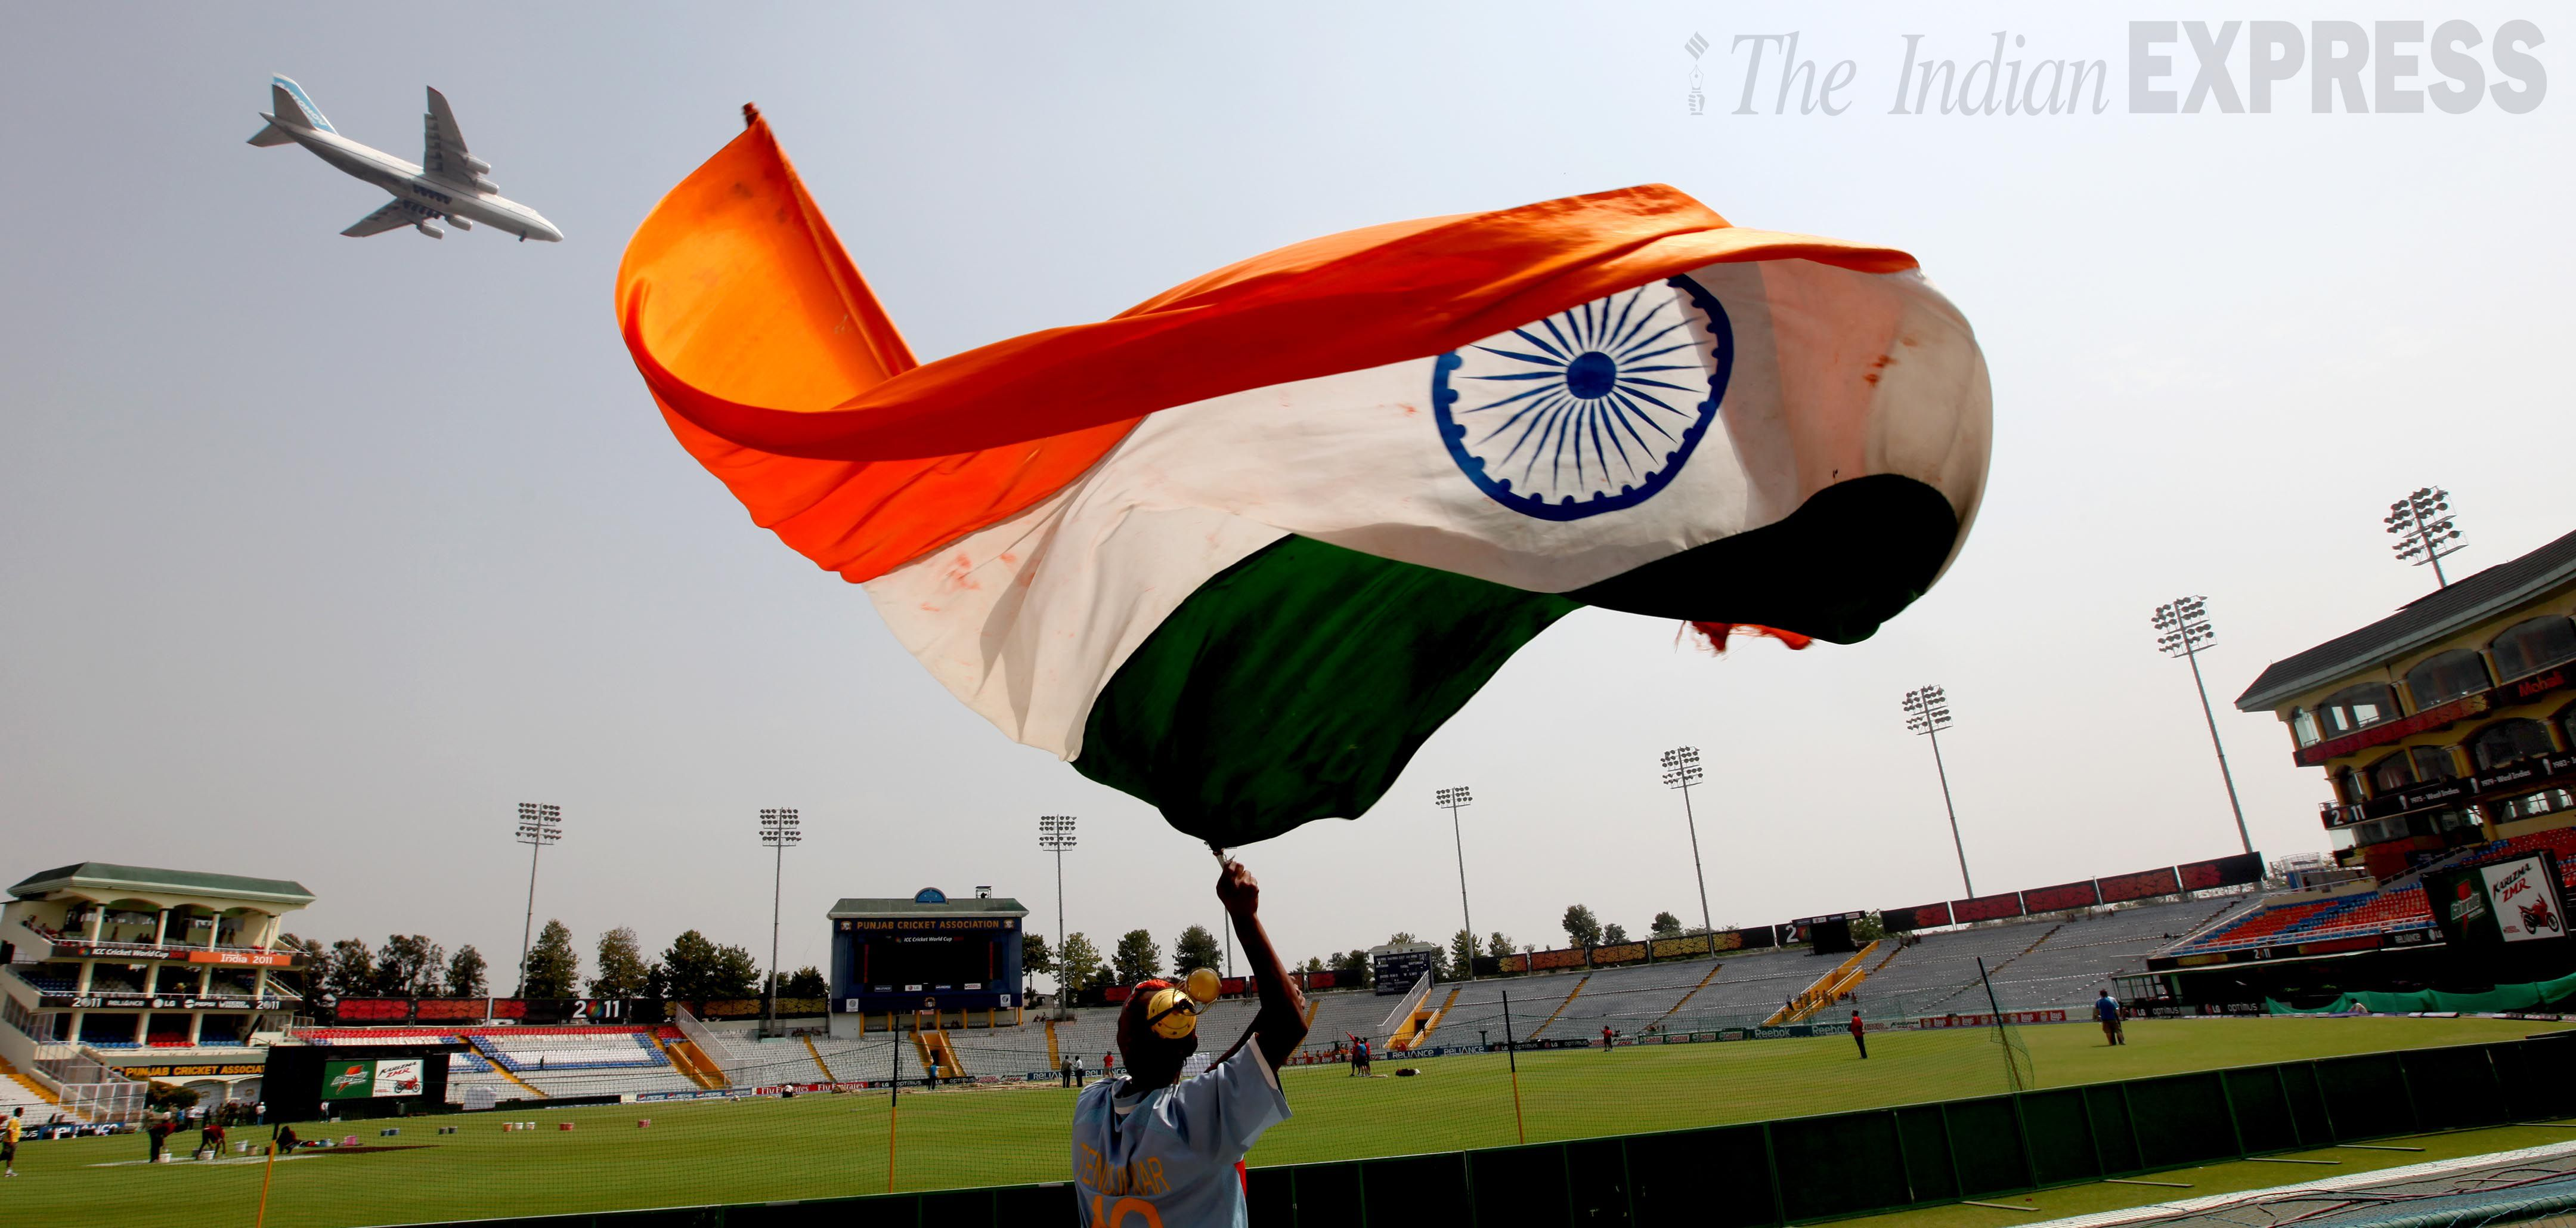 Indian Flag Cricket: A Fan Hoists The Indian Flag, A Day Before The Cricket